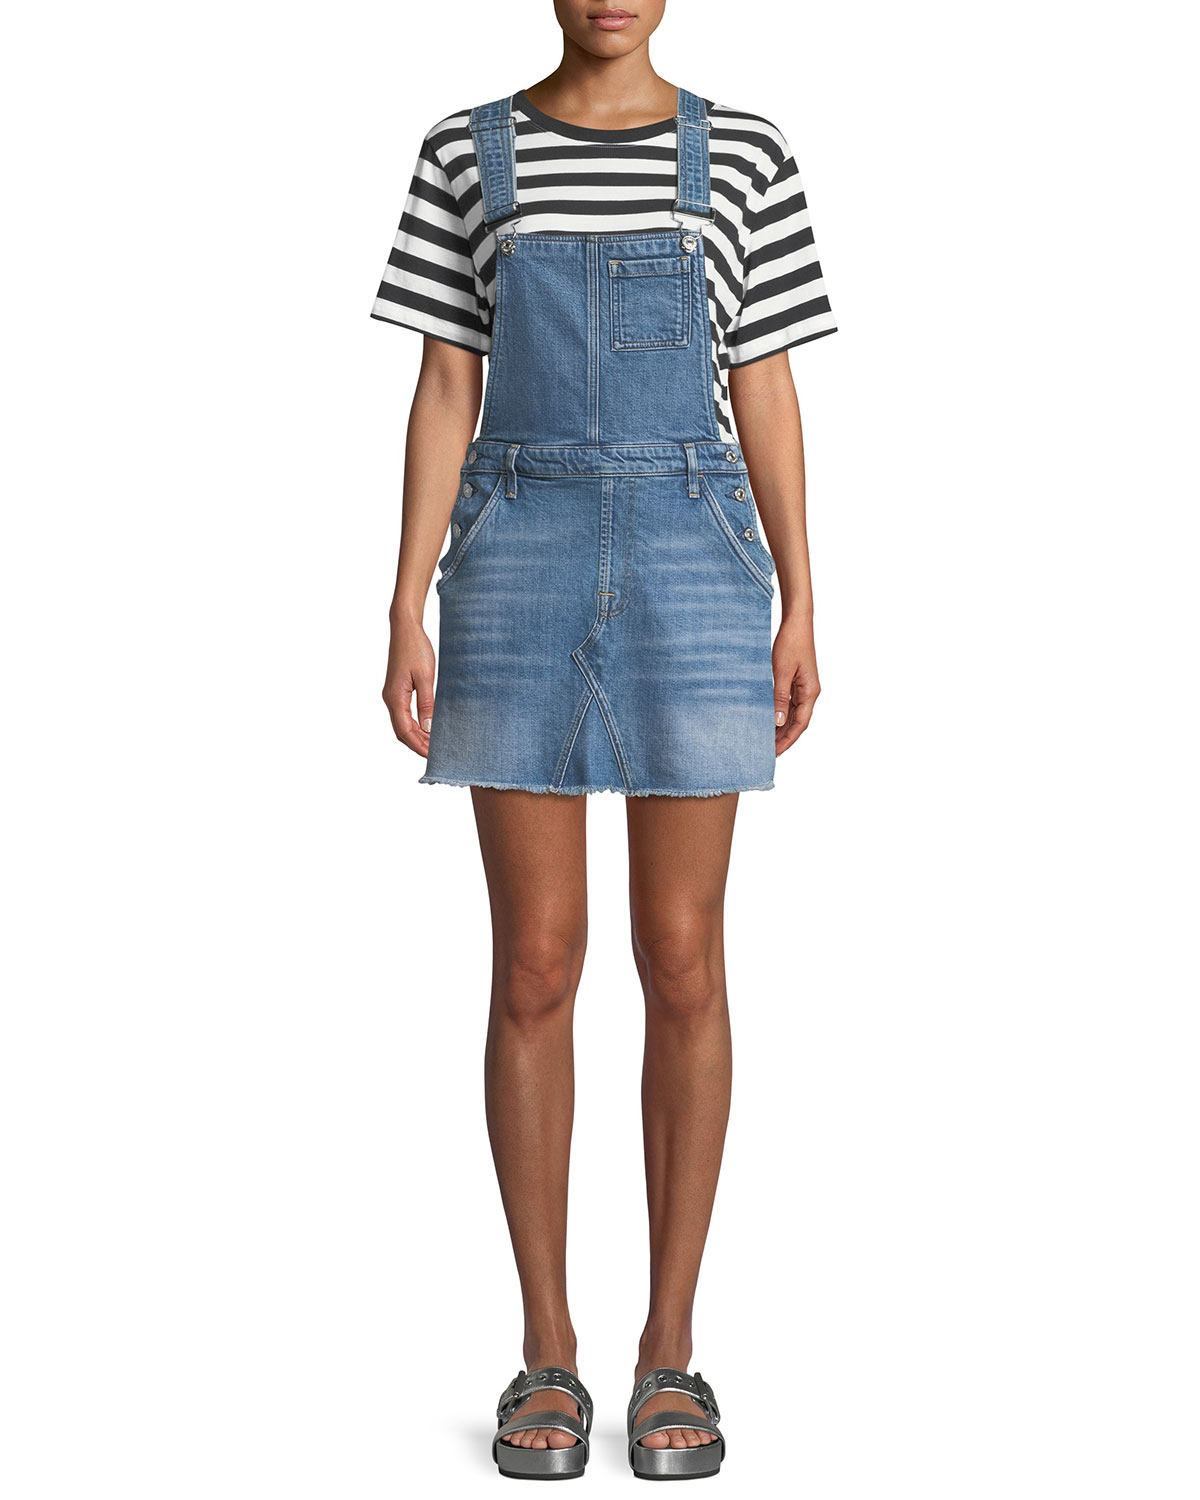 diverse styles 60% discount classic shoes Mini Skirt Denim Overall Dress